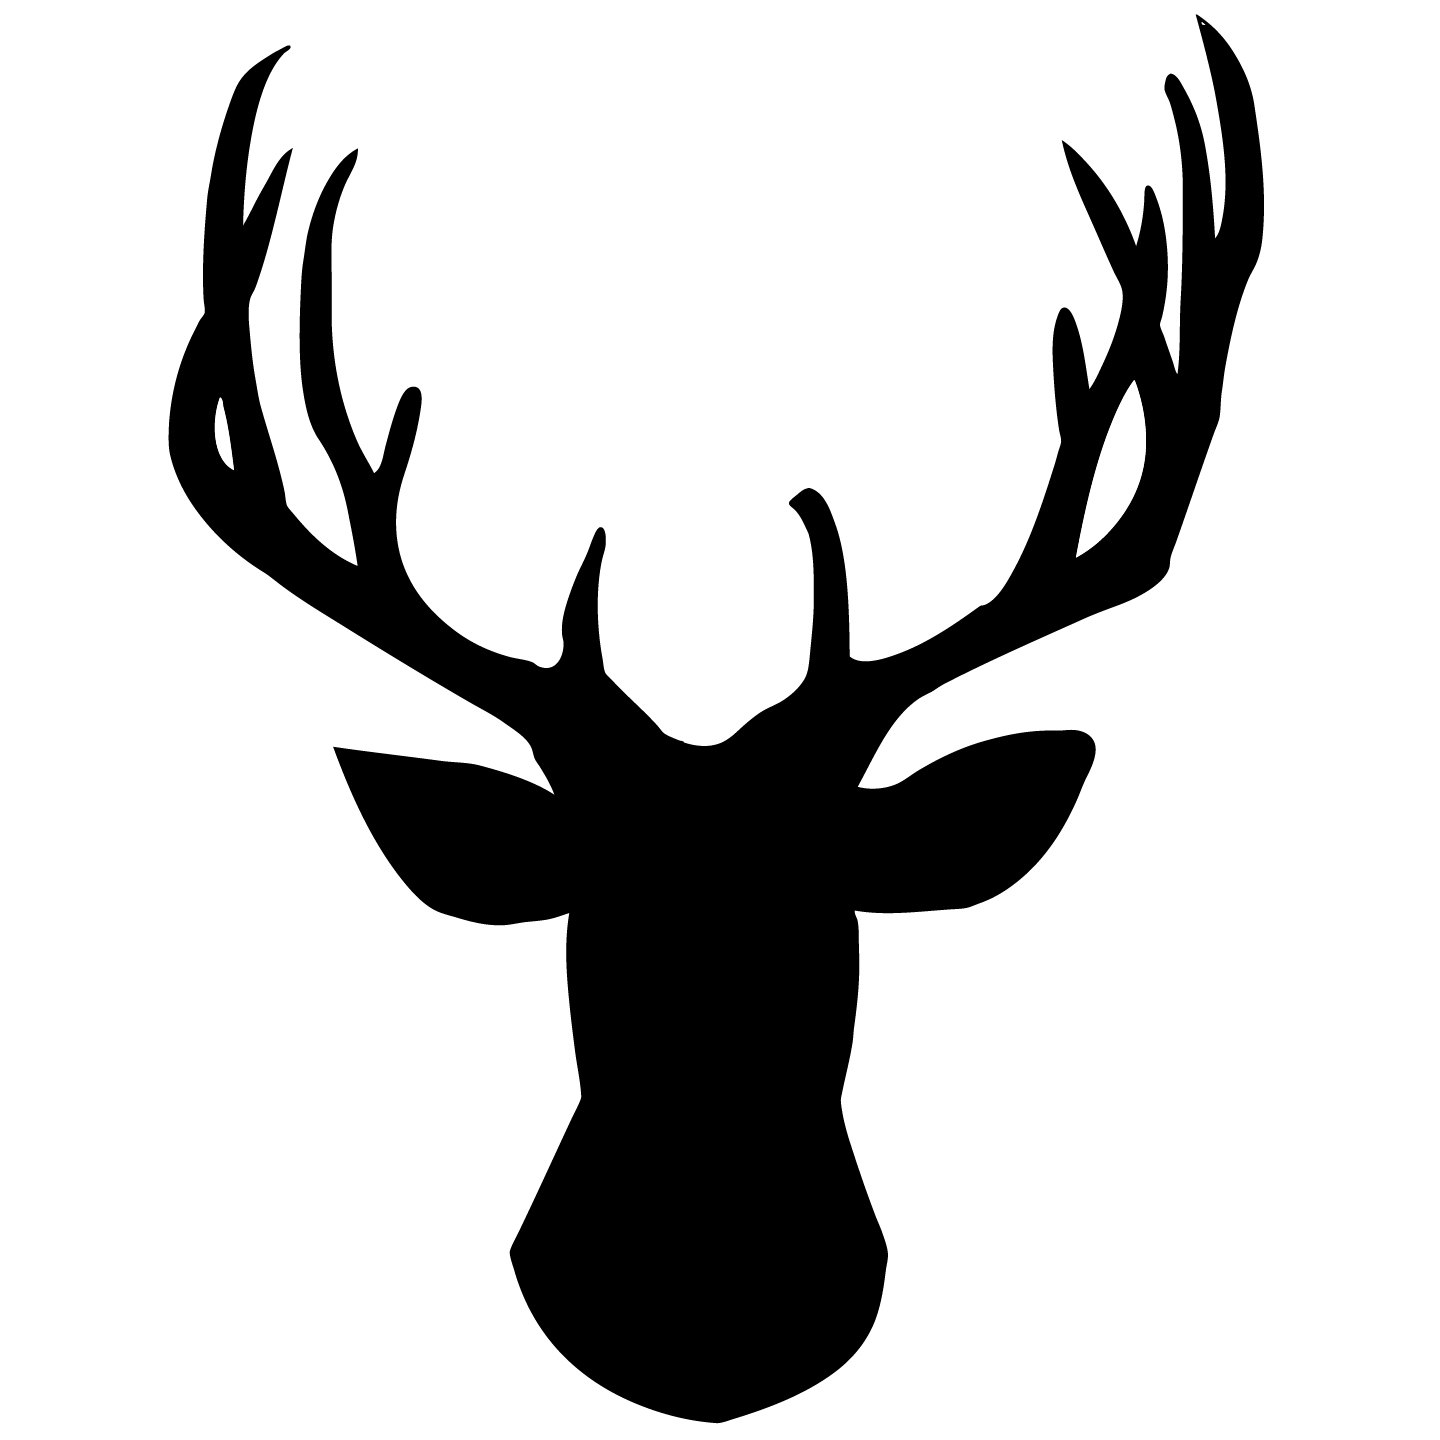 Deer Head Silhouette Vector .-Deer Head Silhouette Vector .-2